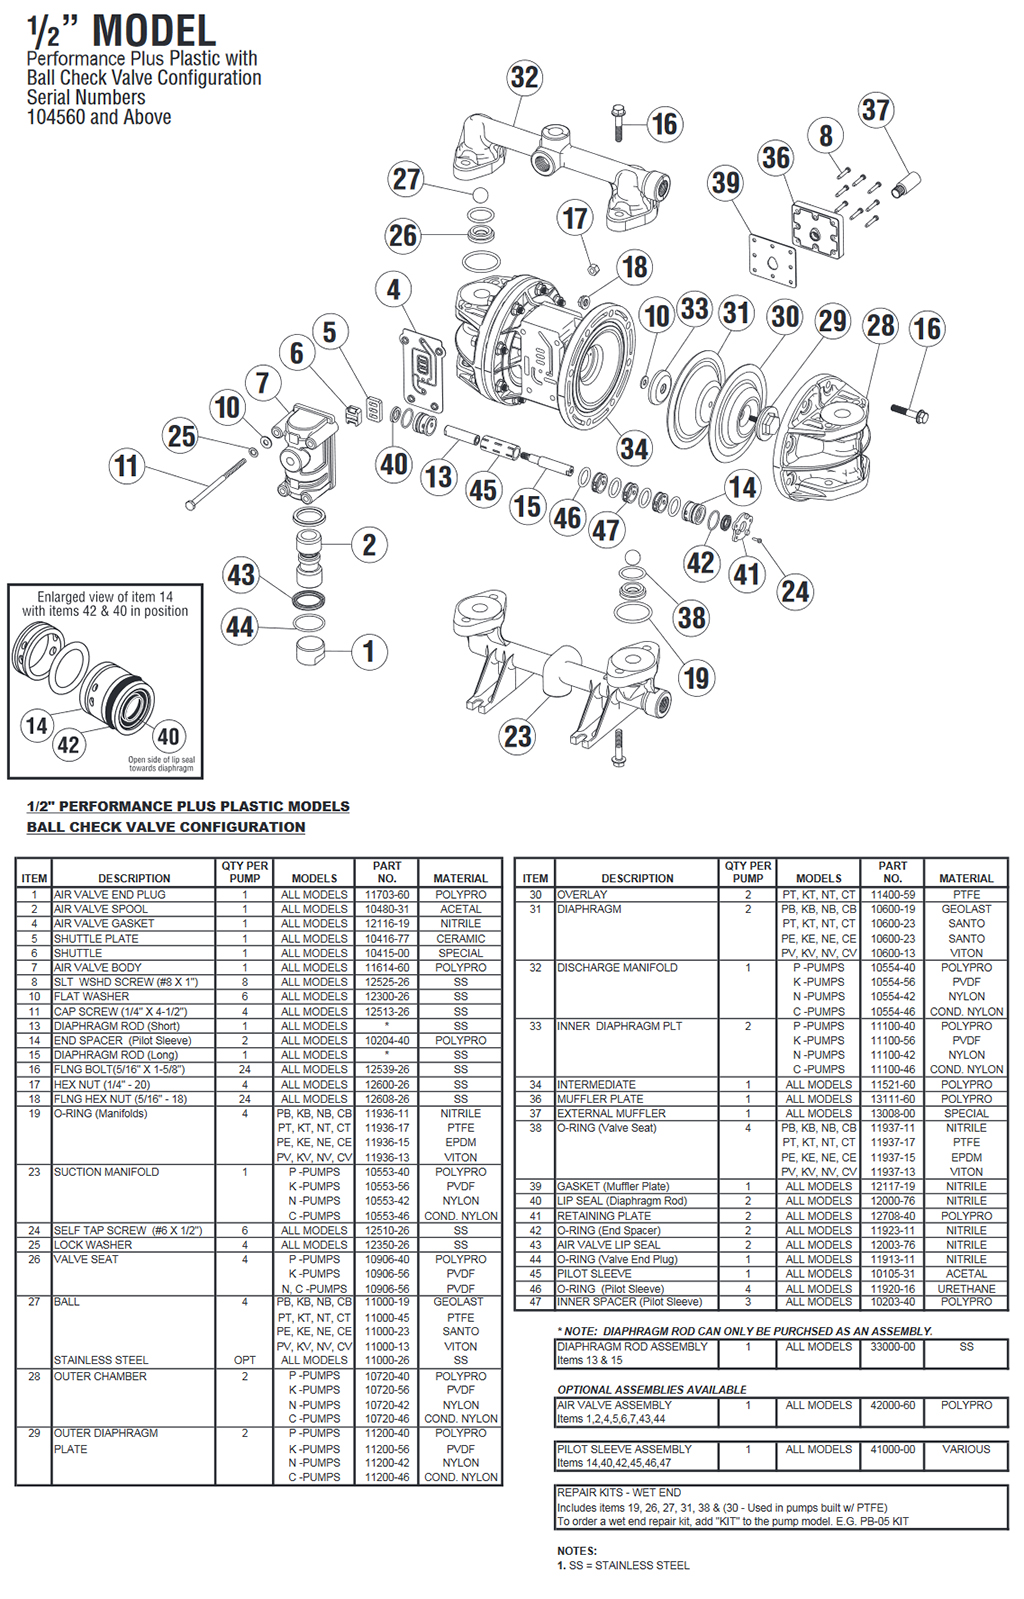 All-Flo Half Inch Exploded View and Parts List